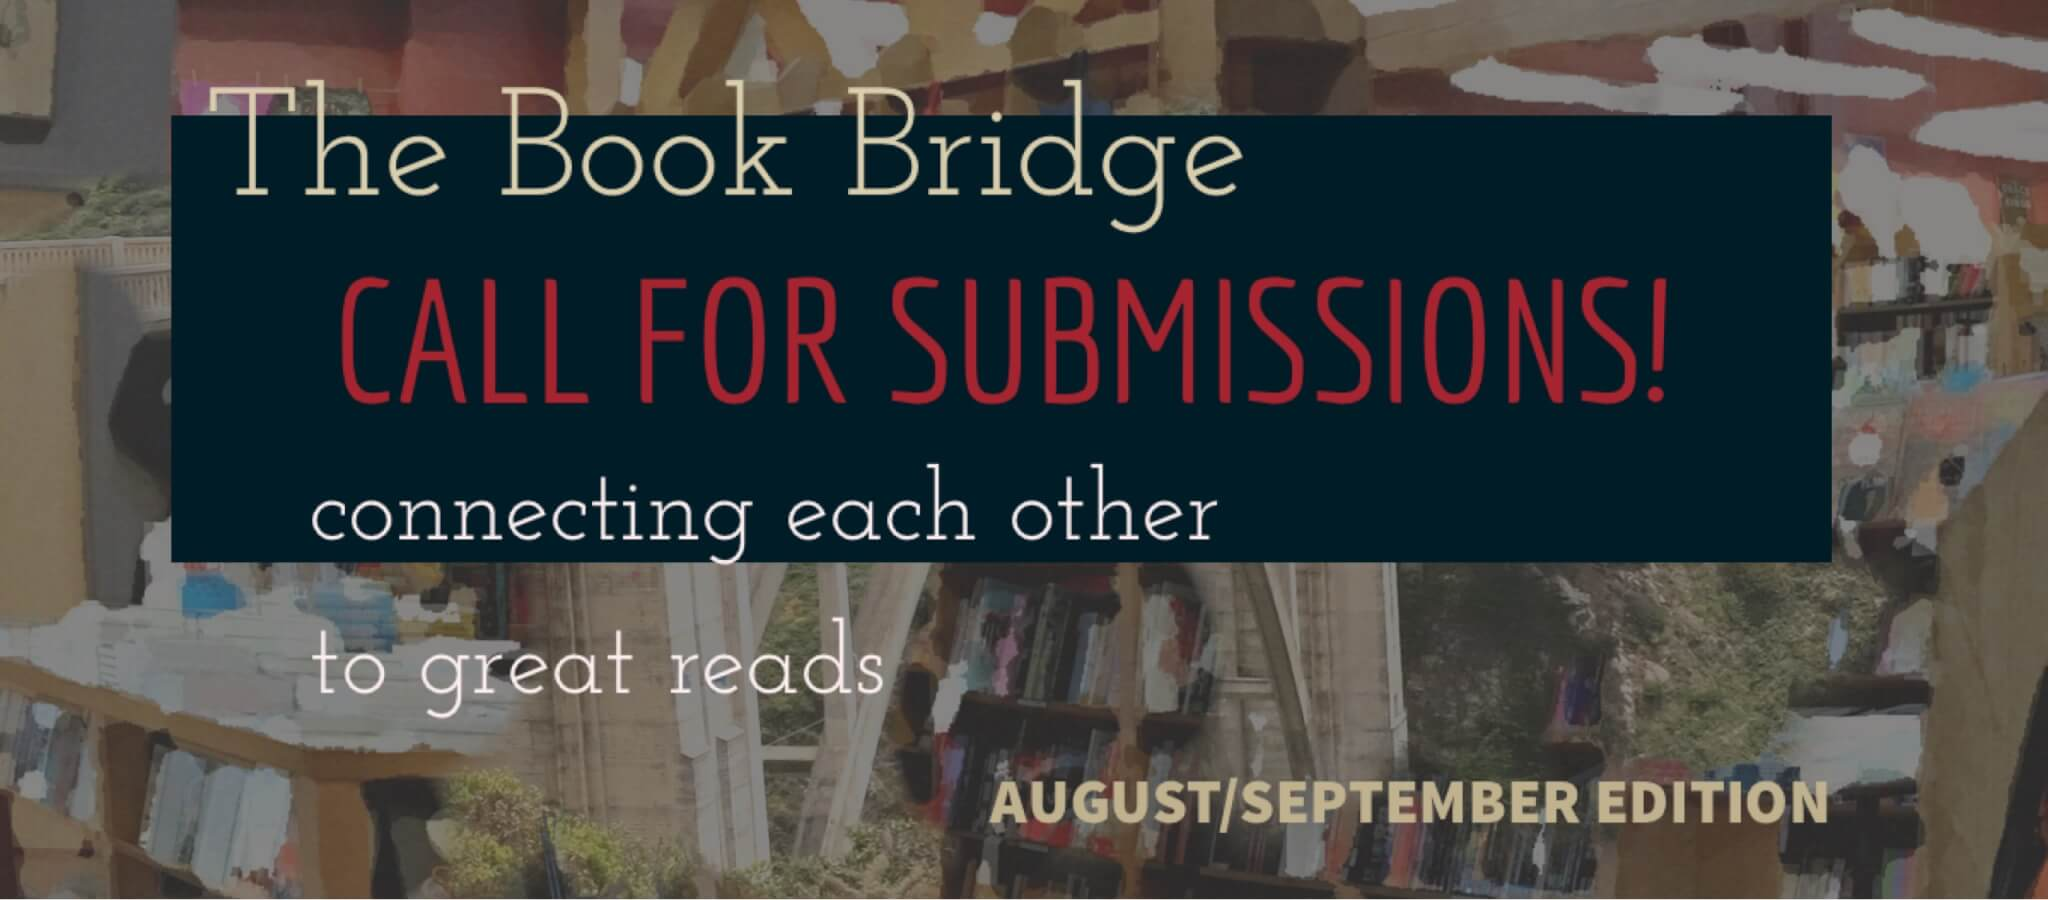 august/september book bridge submissions